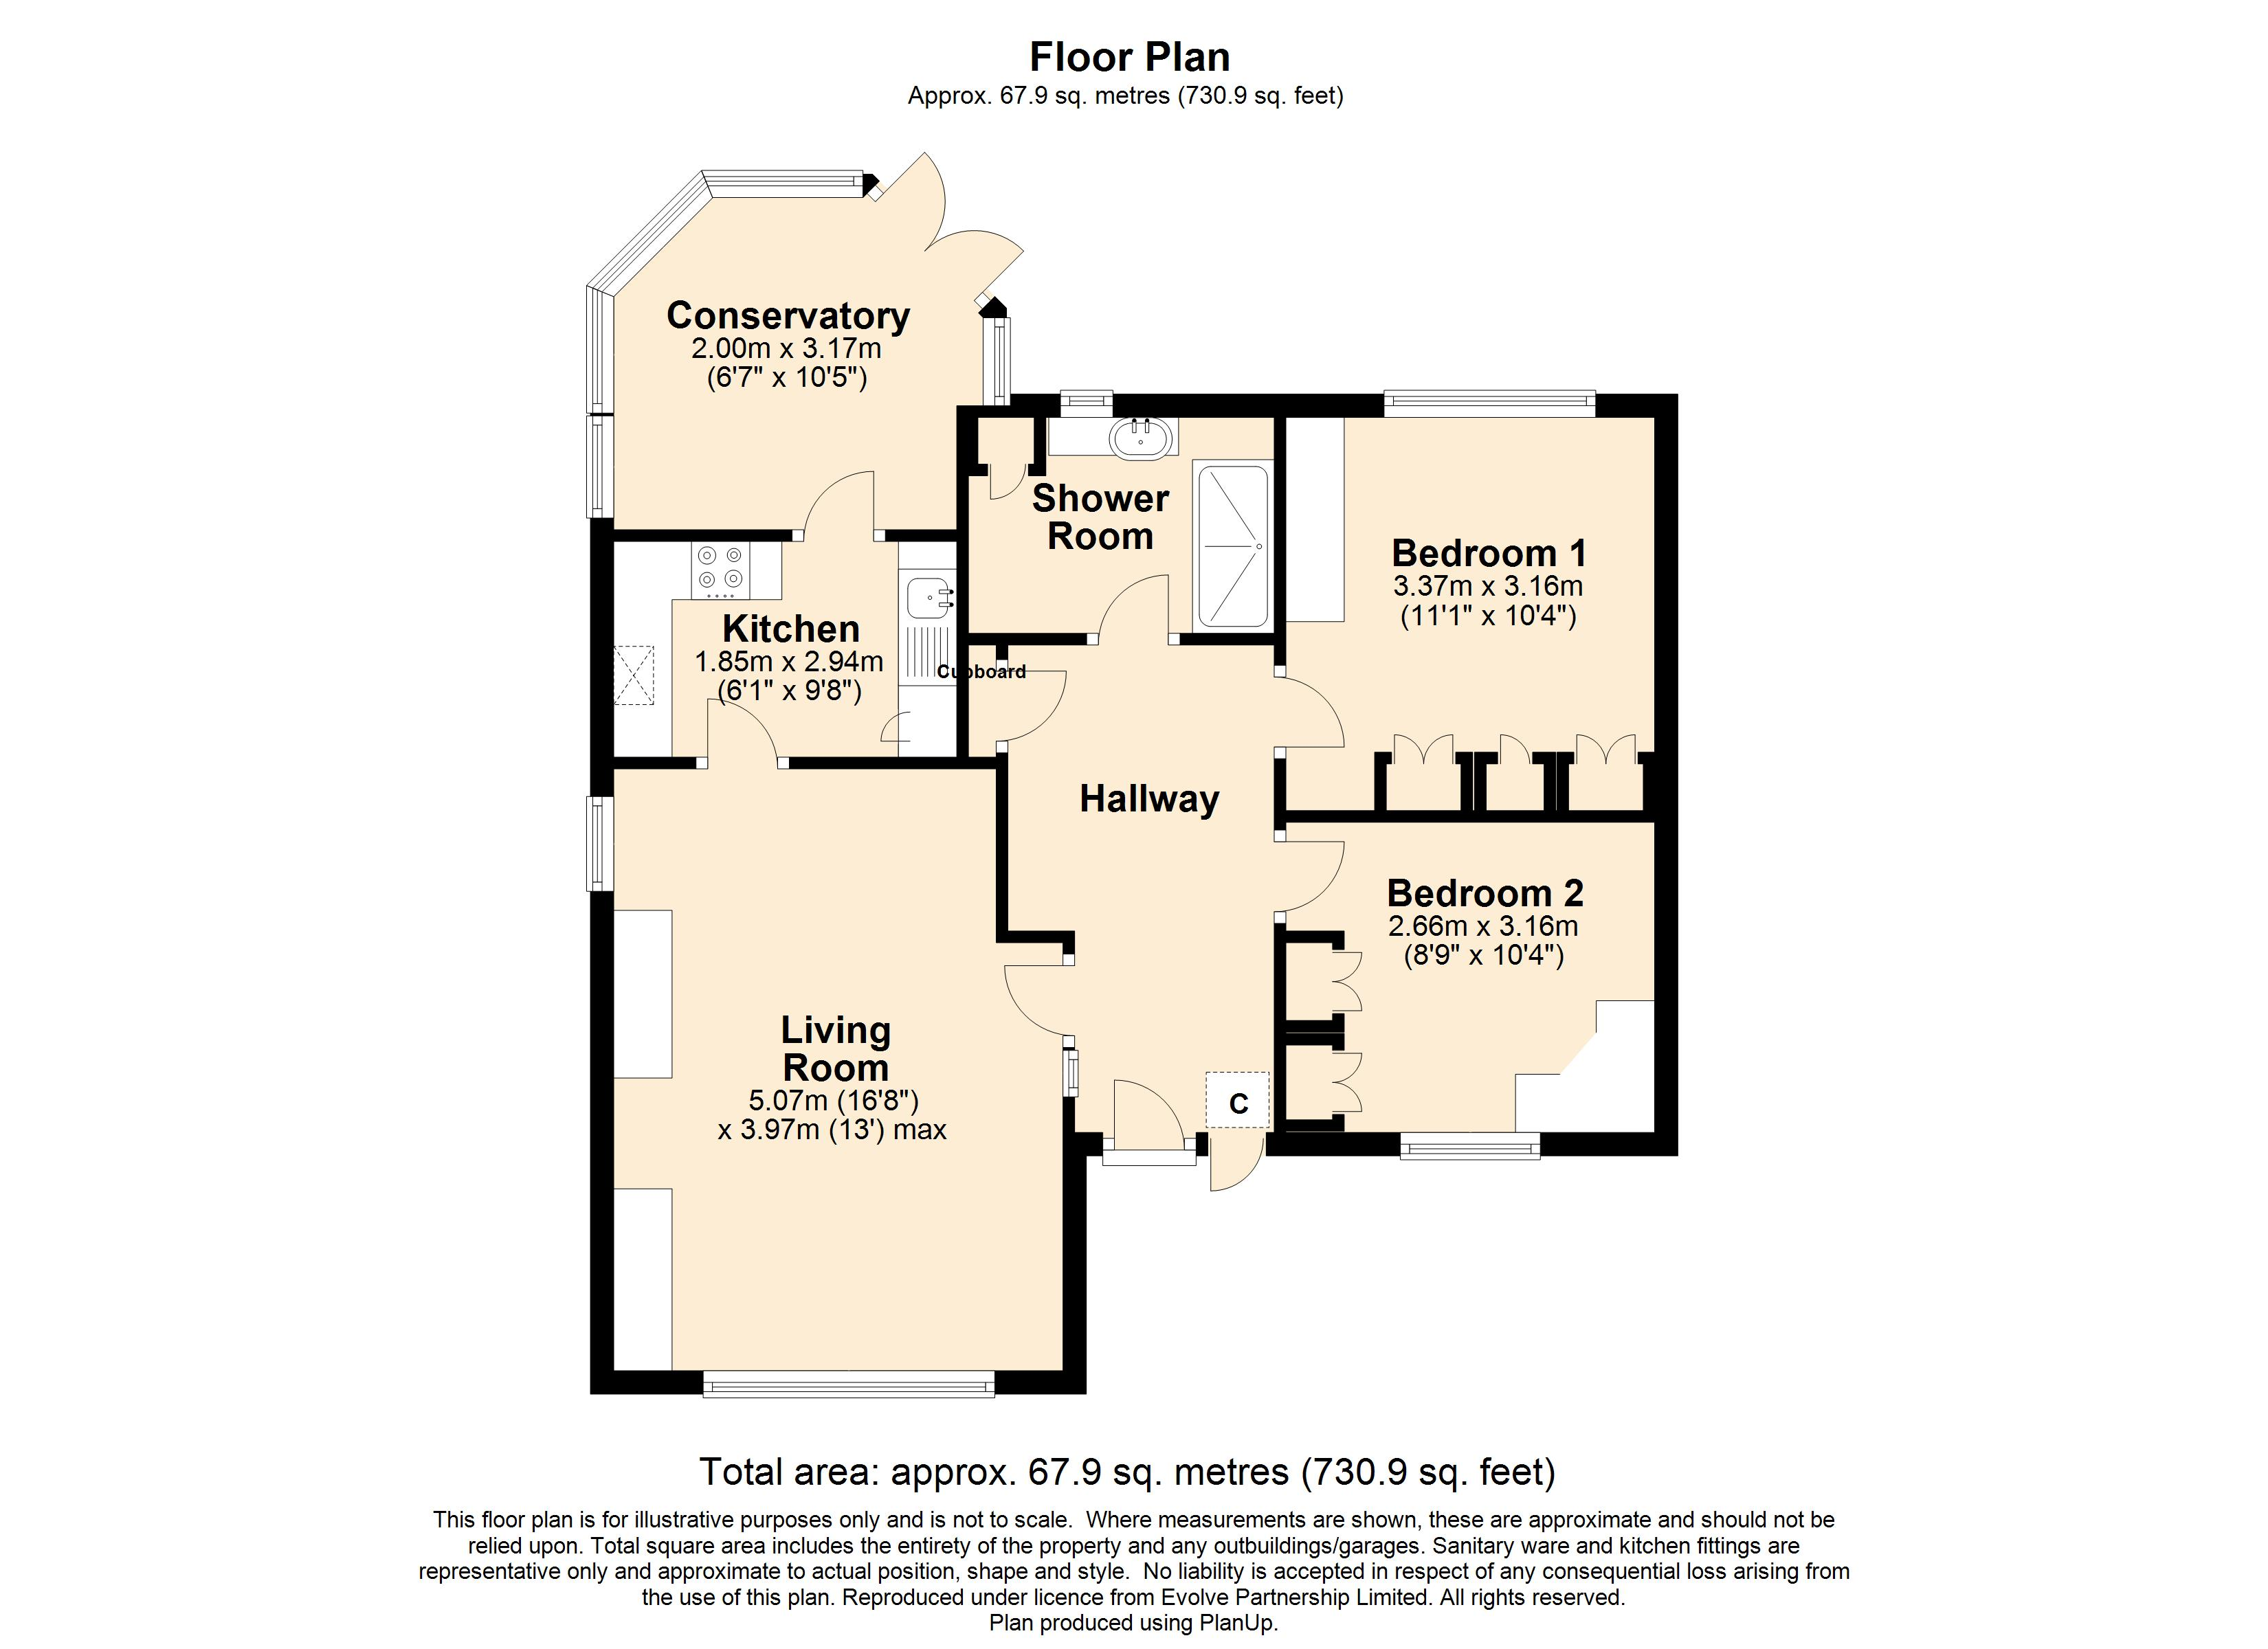 10 Furniss Court Floorplan